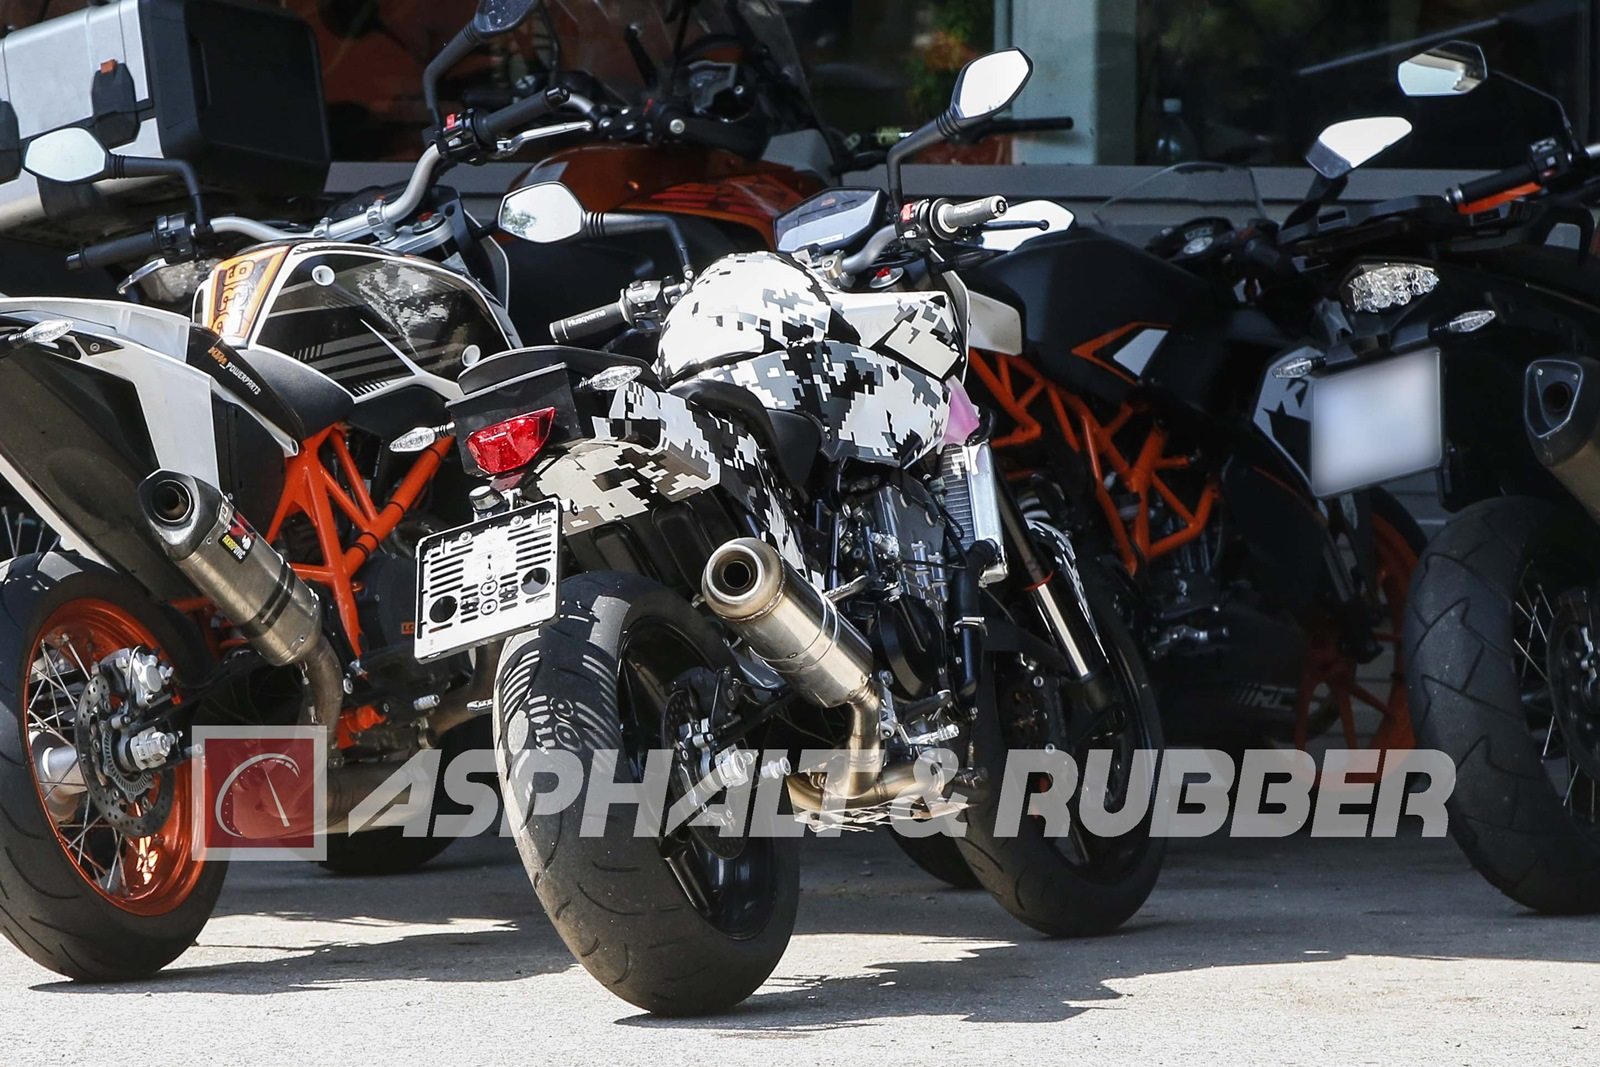 New KTM Duke 800 rear view